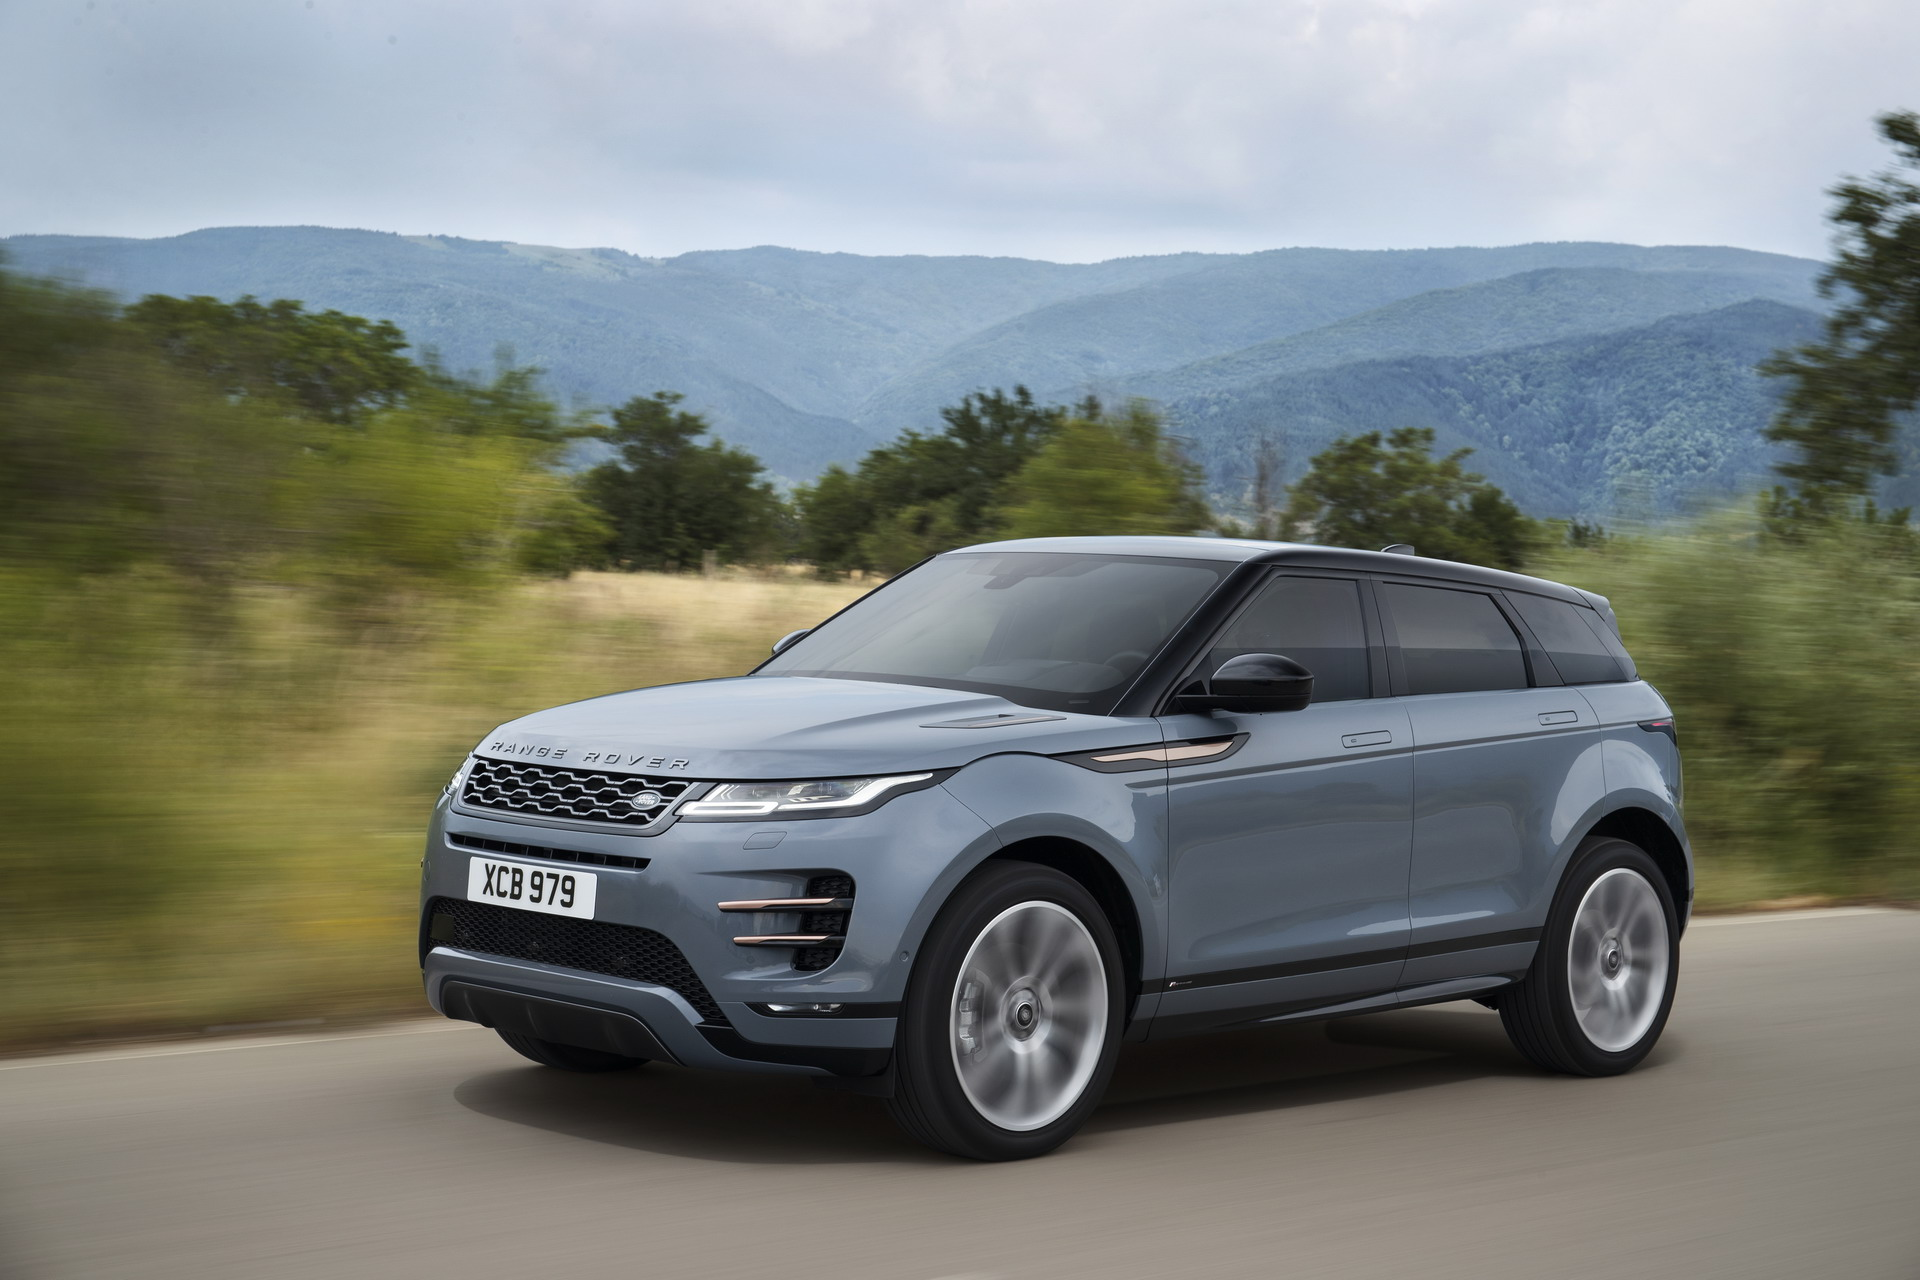 2020 Range Rover Evoque Officially Unveiled As The Iest Small Suv Ever